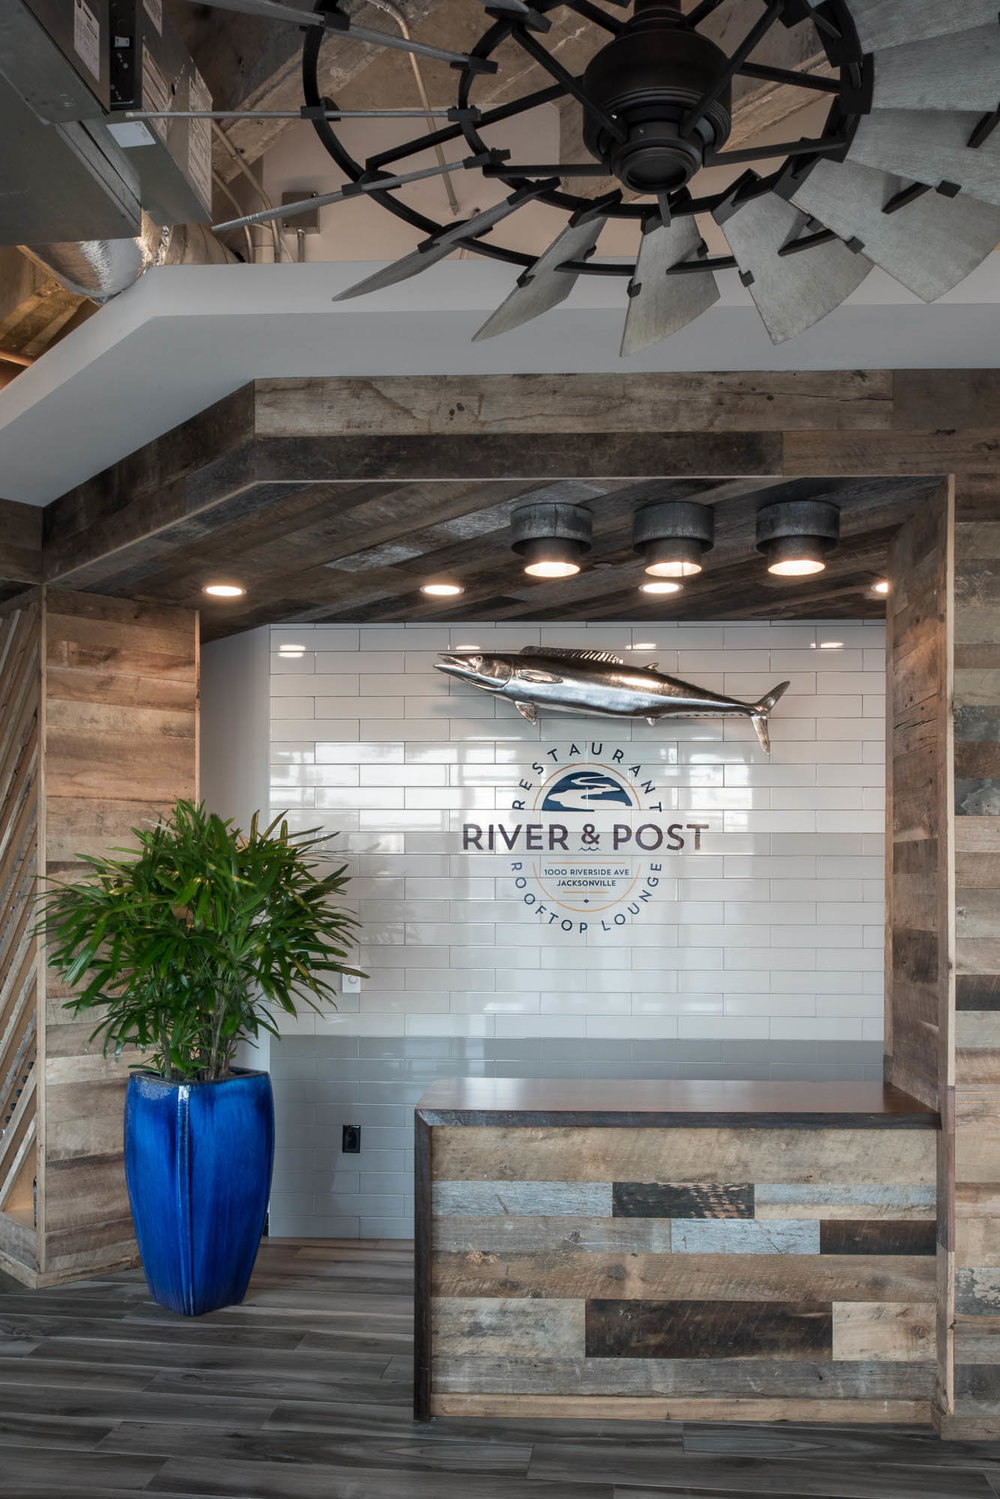 River and Post Restaurant Rooftop Lounge Jacksonville Florida Hostess Stand Entrance Commercial Interior Design reclaimed wood subway tile.jpg